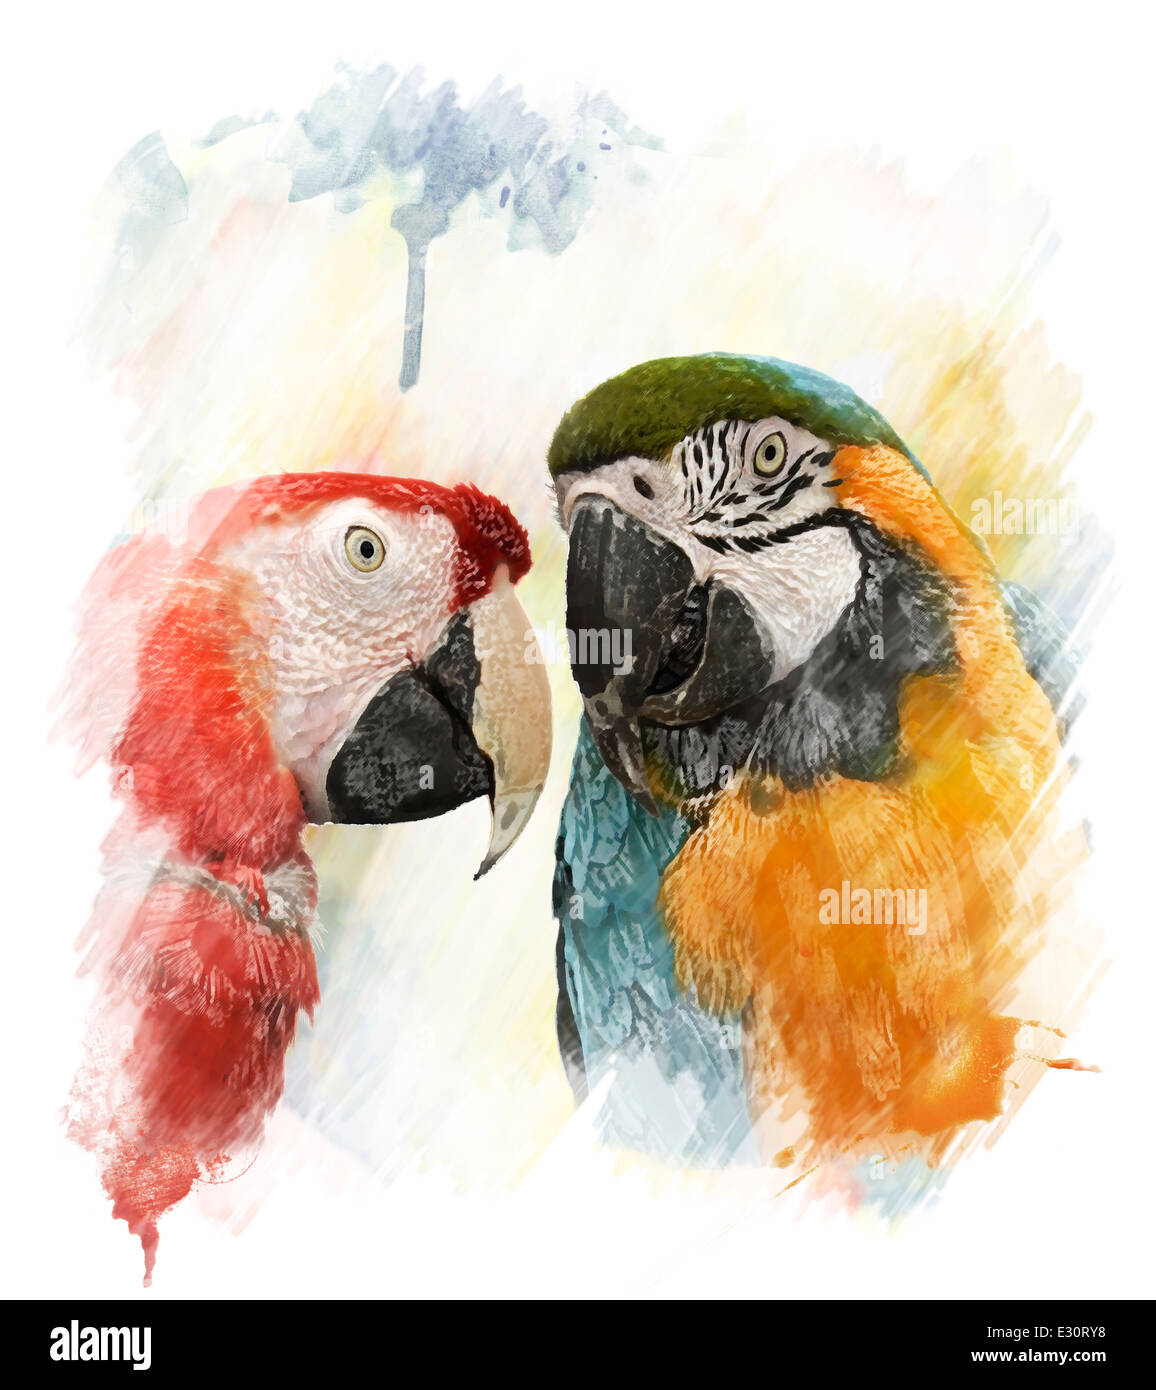 Aquarelle peinture digitale de deux perroquets colorés Photo Stock